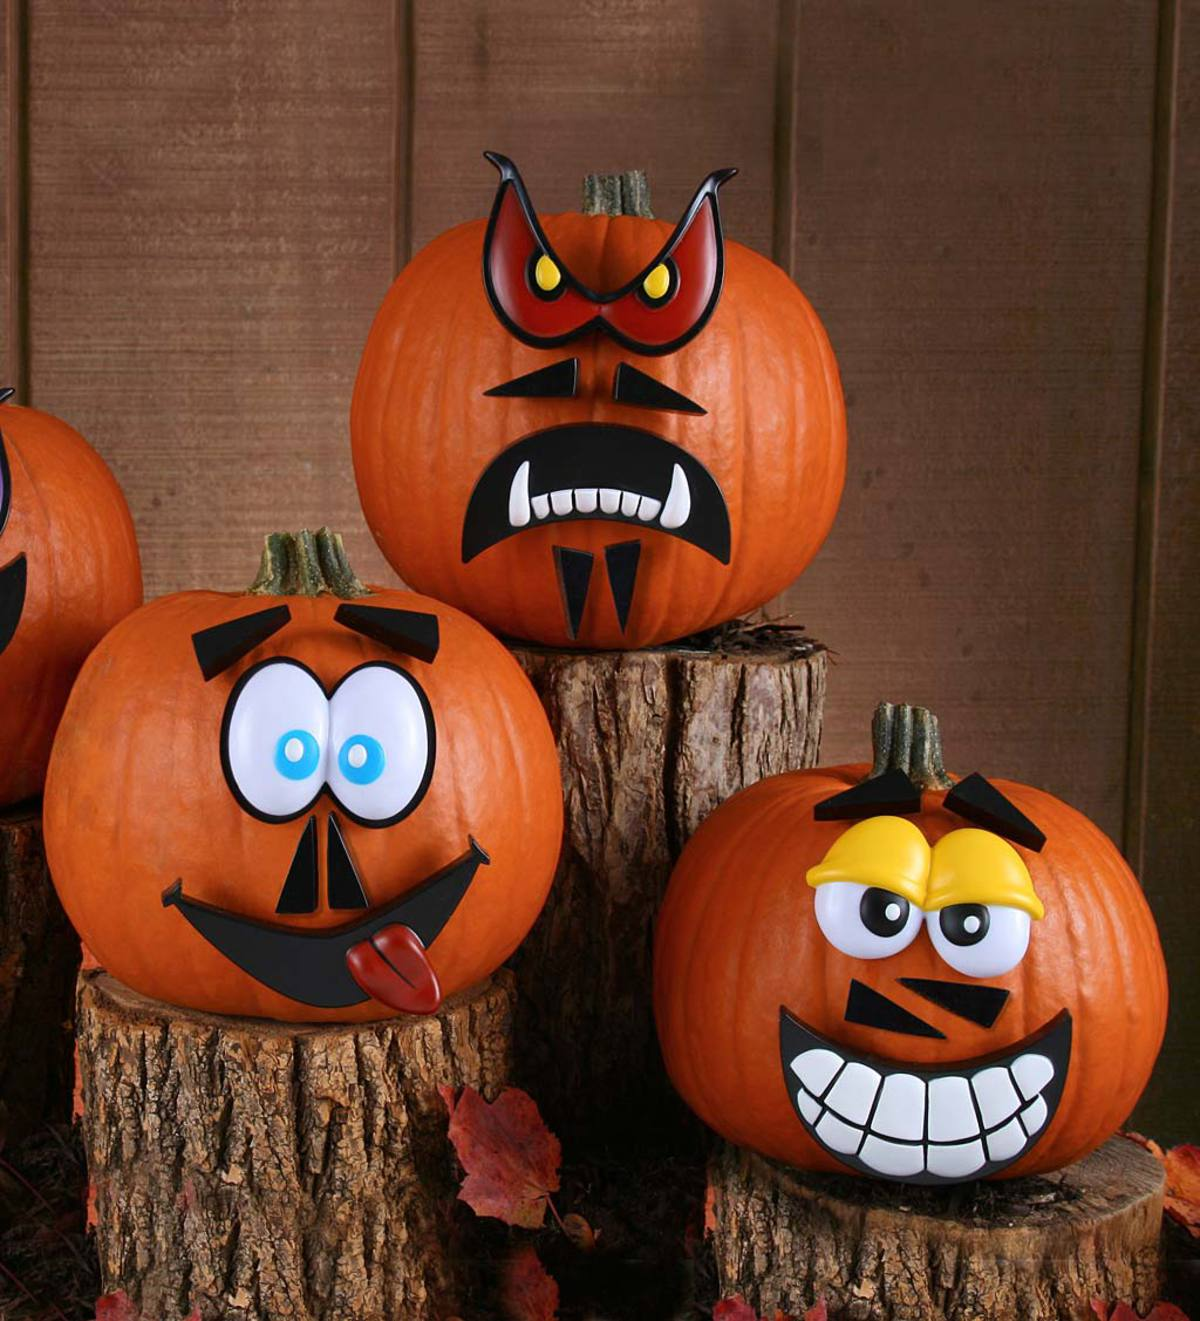 Pumpkin Face Pictures: Halloween Decorations For Kids